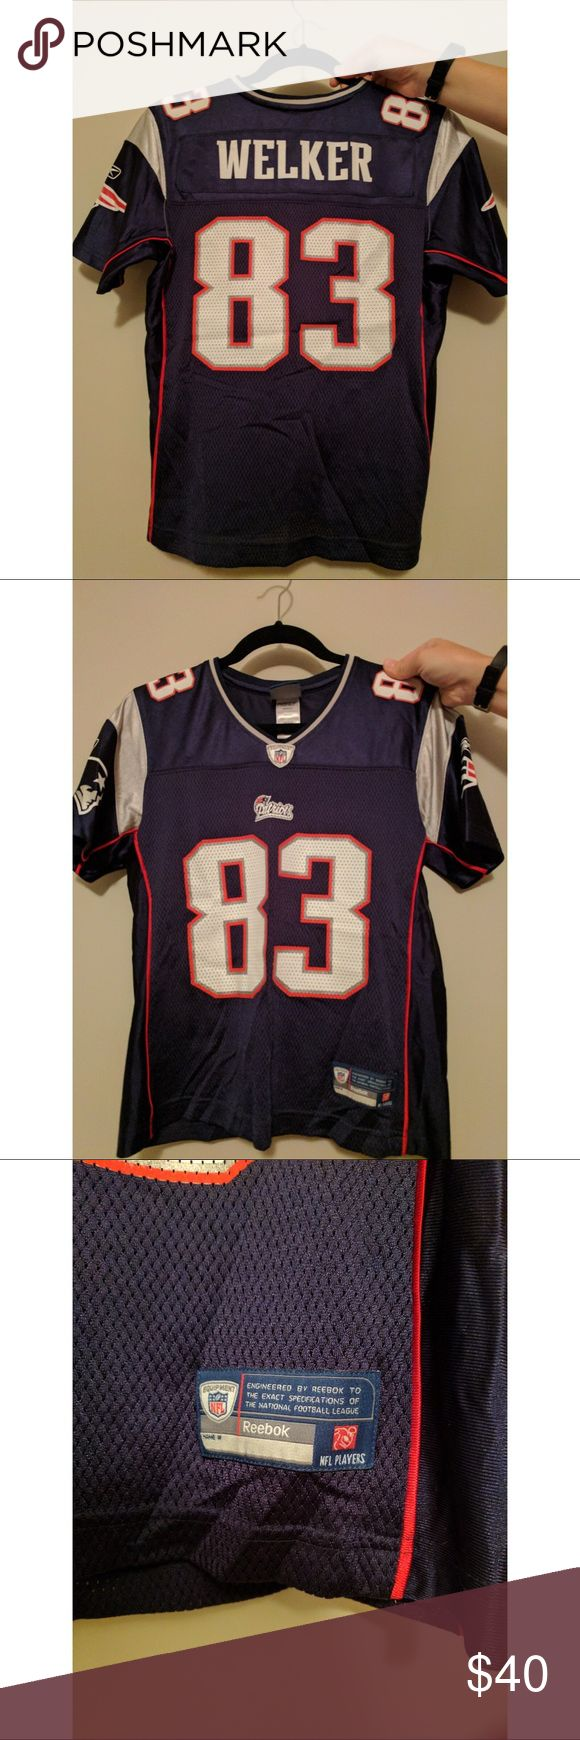 • nfl patriots • 🏈 • wes welker jersey • NFL New England Patriots jersey. Bought straight from the NFL Pro Shop. Barely worn, maybe 2-3 times. It is just too small on me. Great for game days! Tops